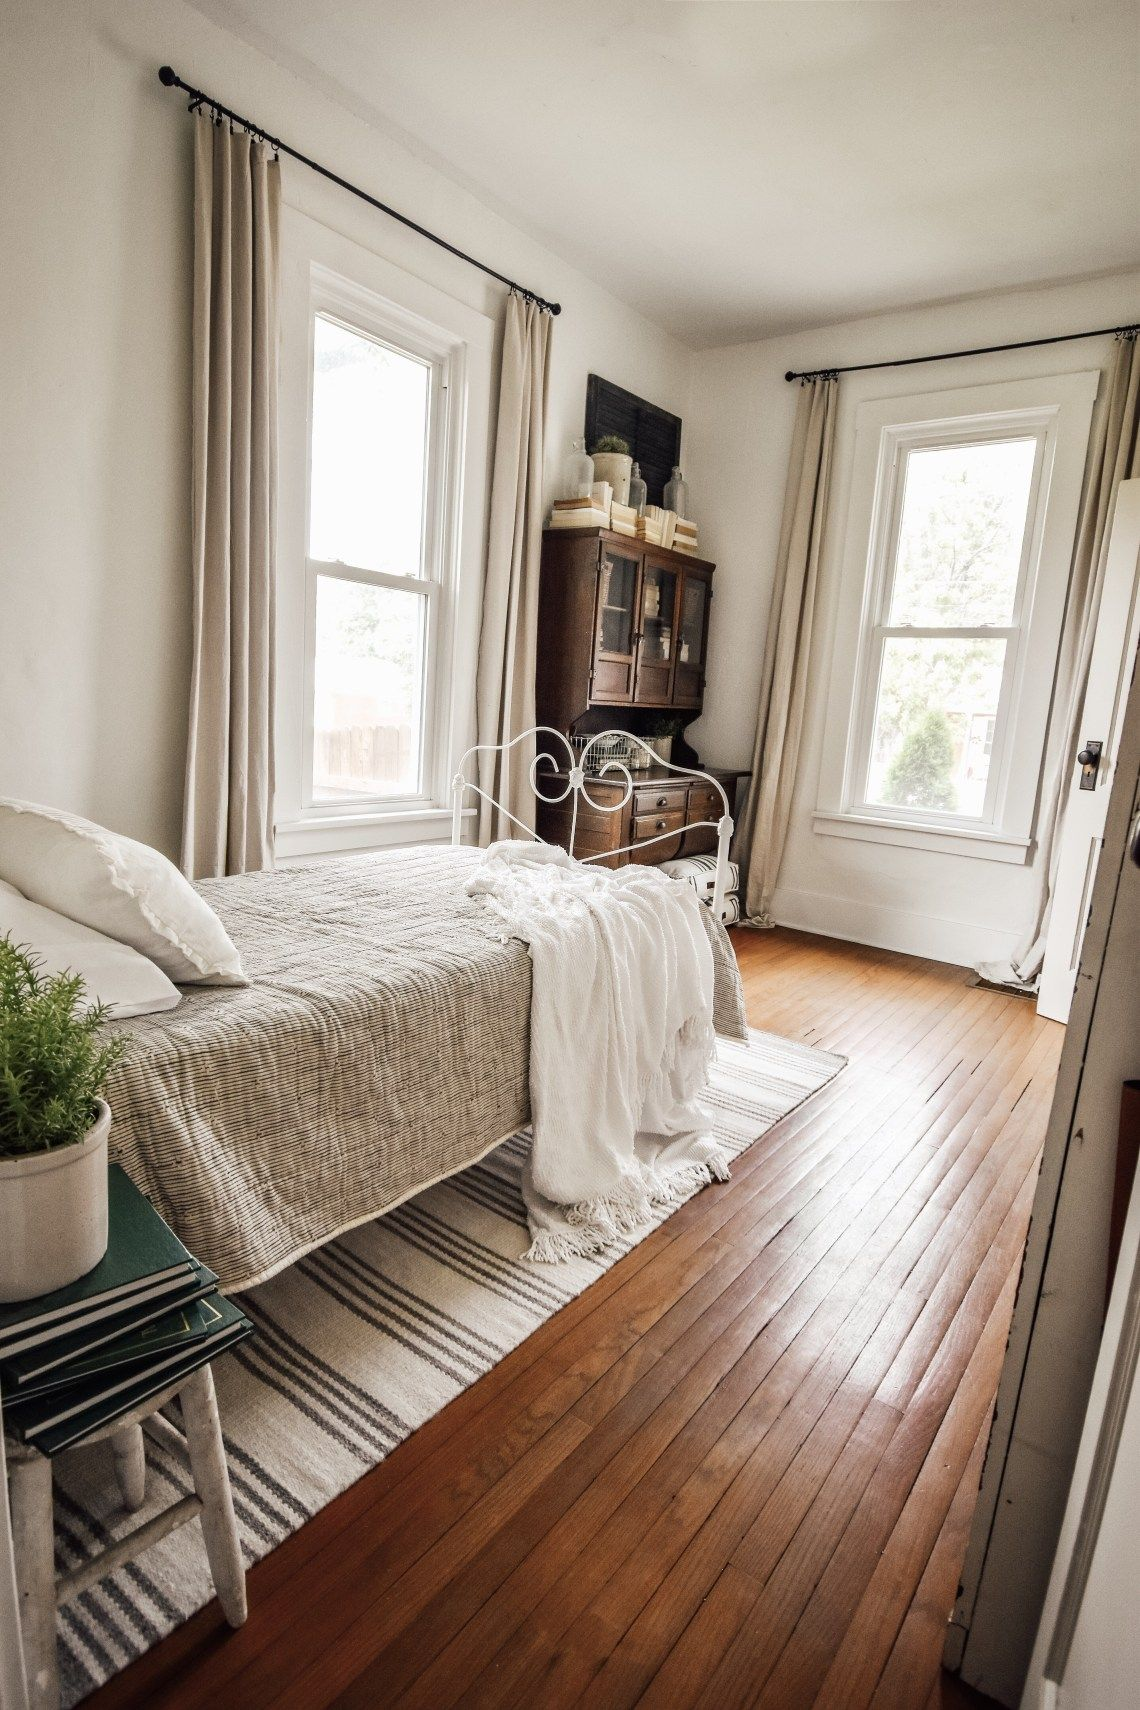 An Office Guest Room Combo | Guest room office, Small ...